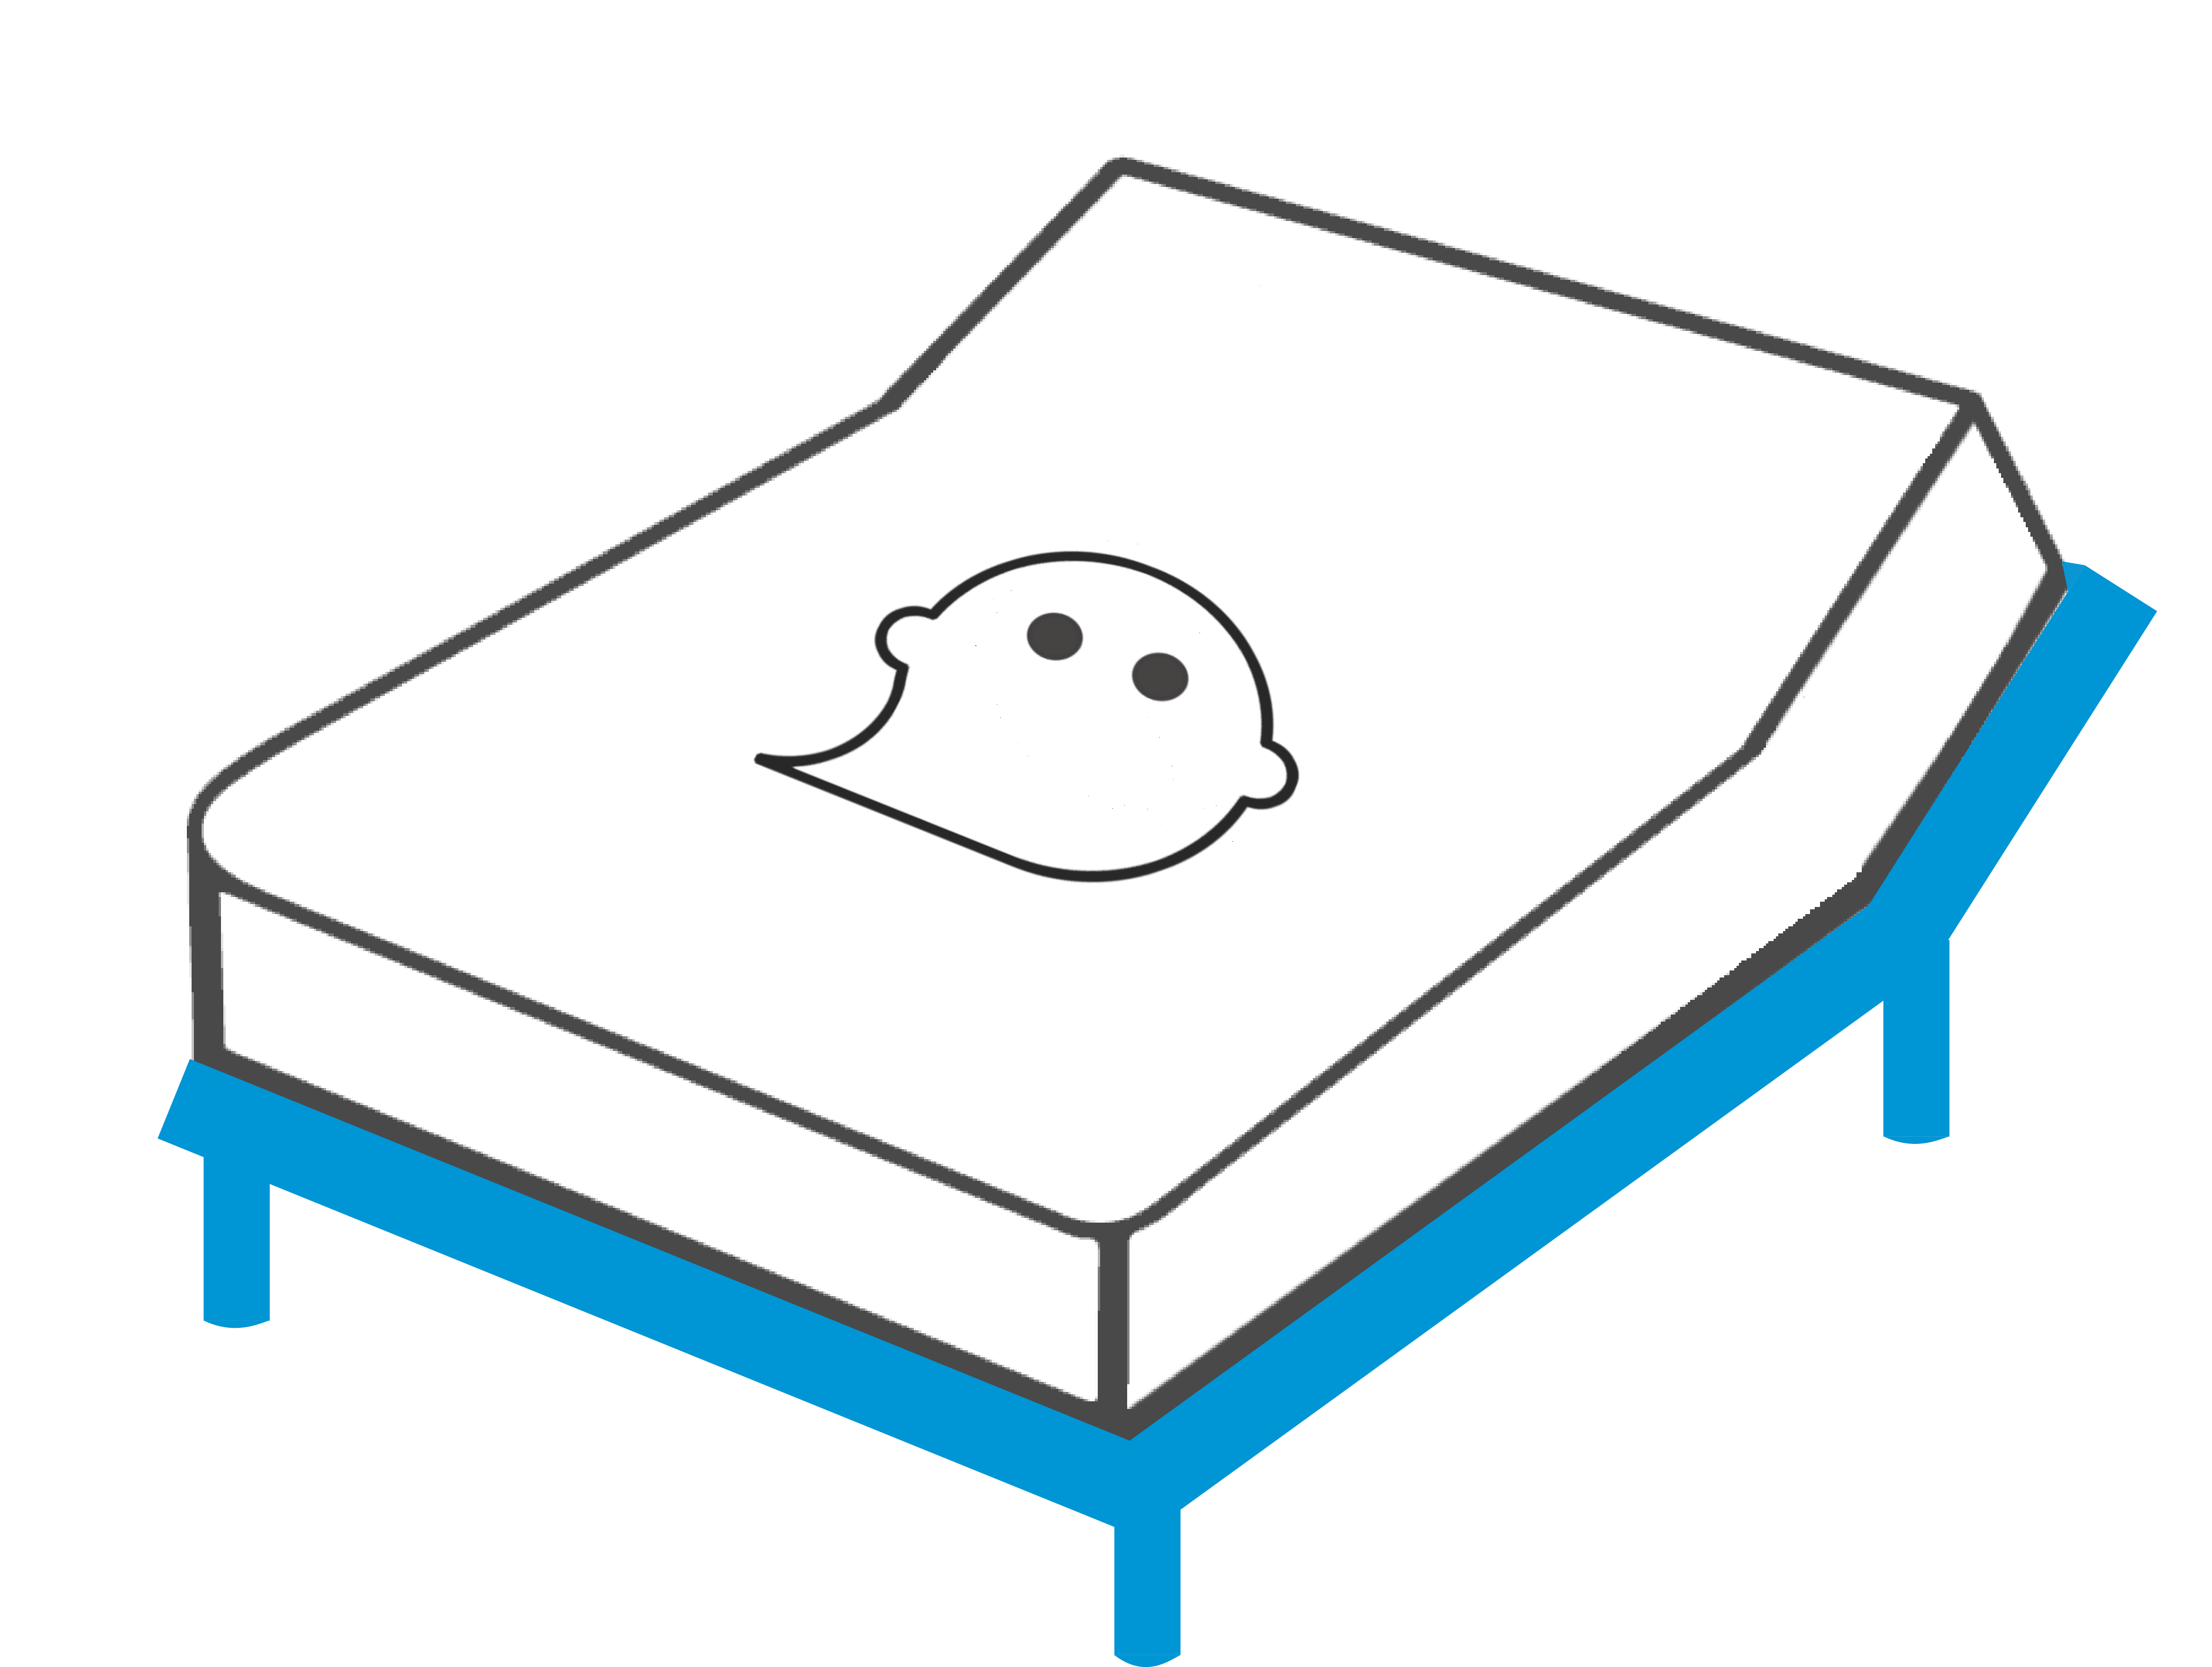 The ghostbed luxe coolest. Clipart bed empty bed